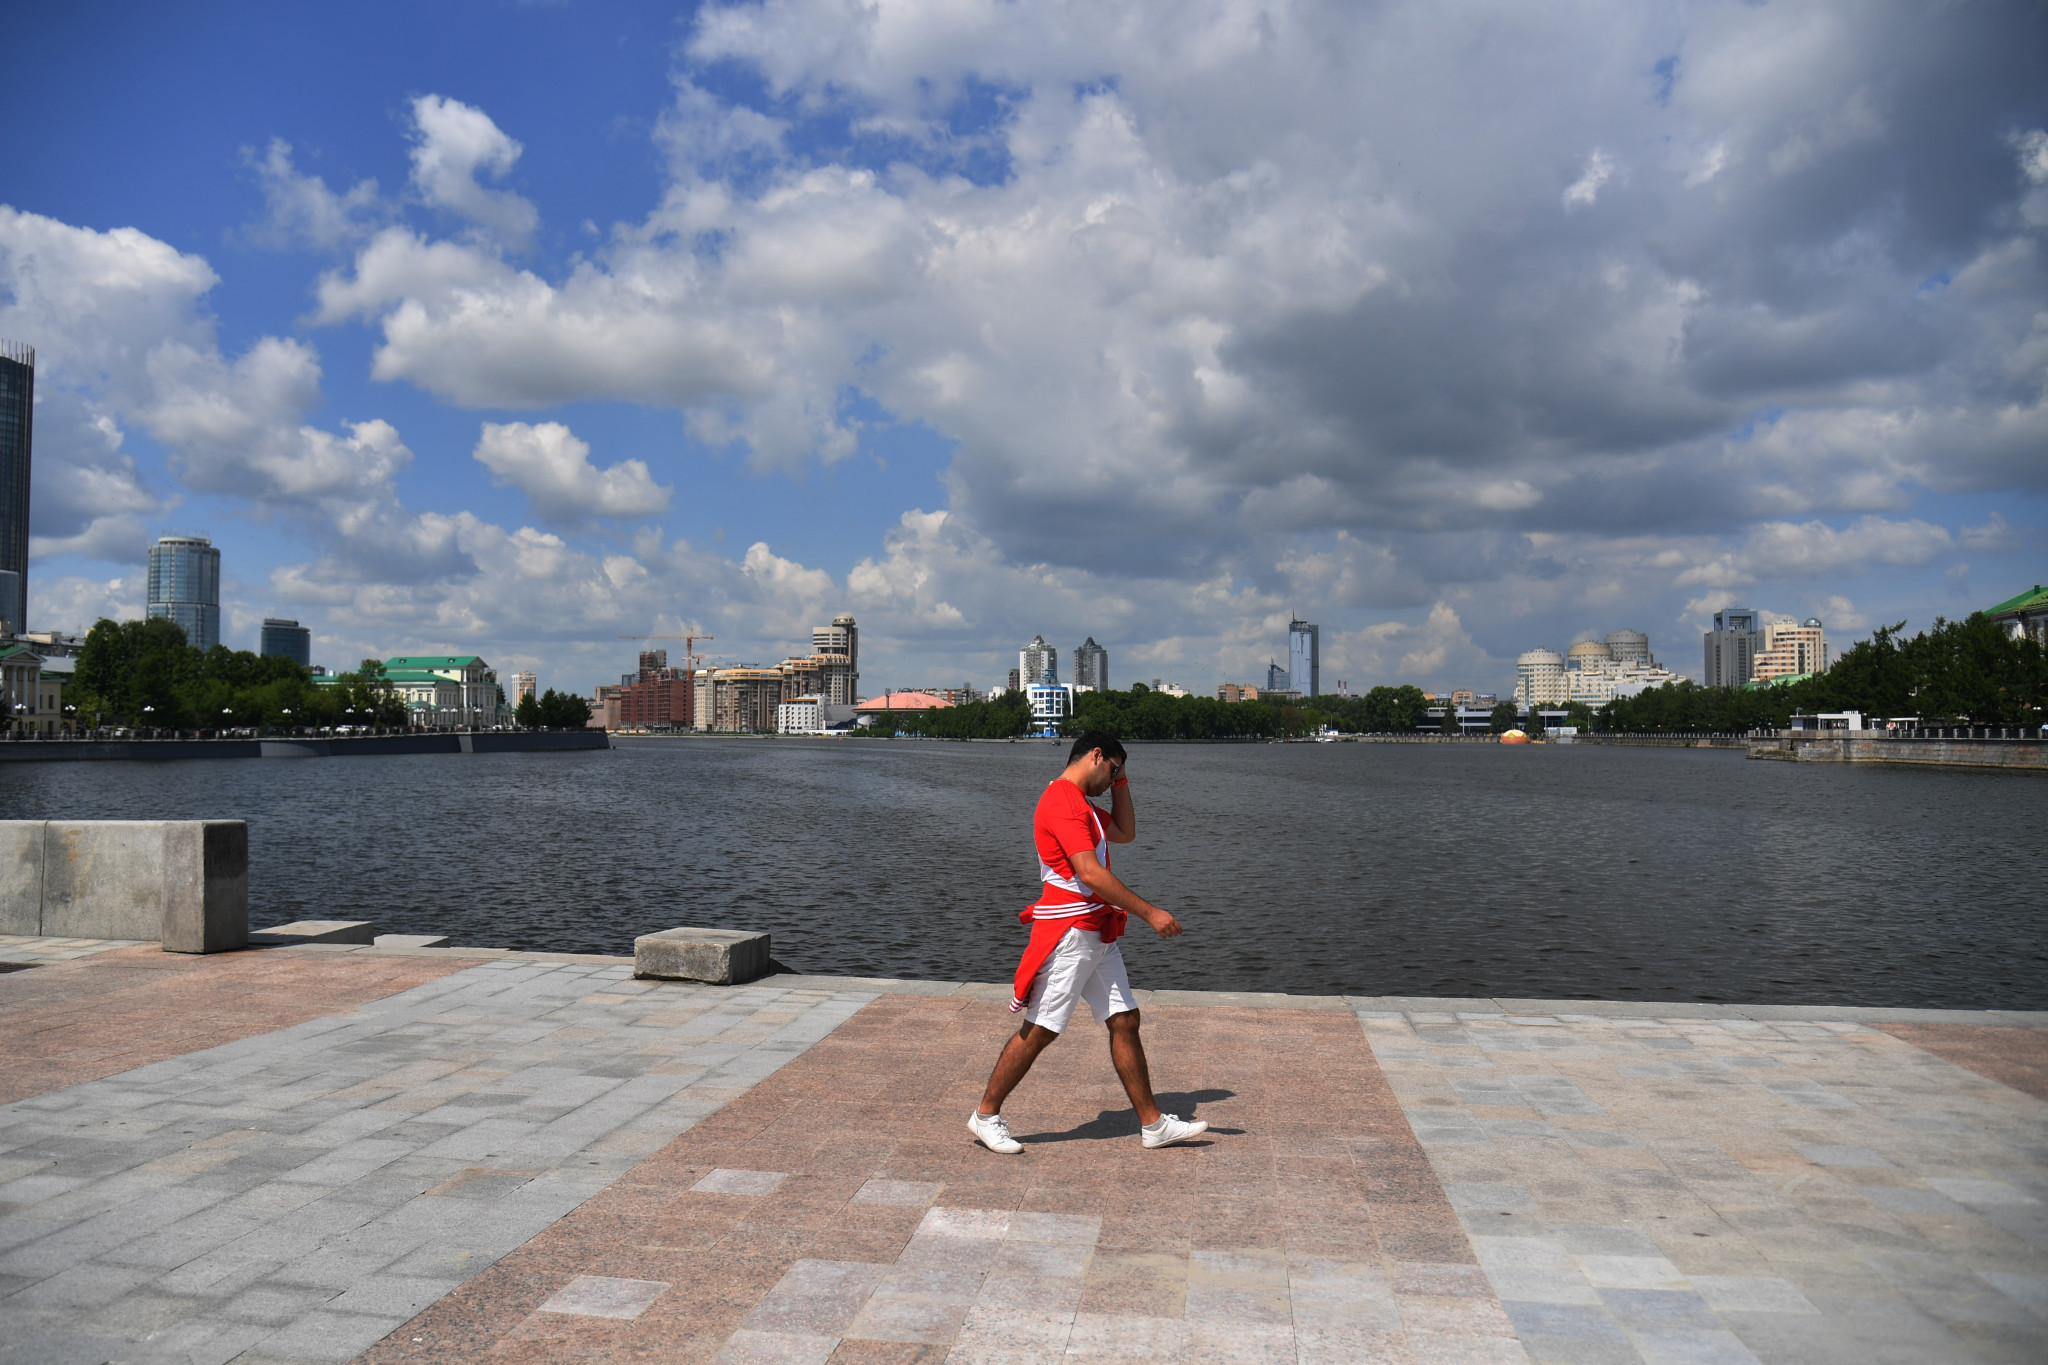 Yekaterinburg is set to host the World University Games from August 8 to 19 in 2023 ©Getty Images